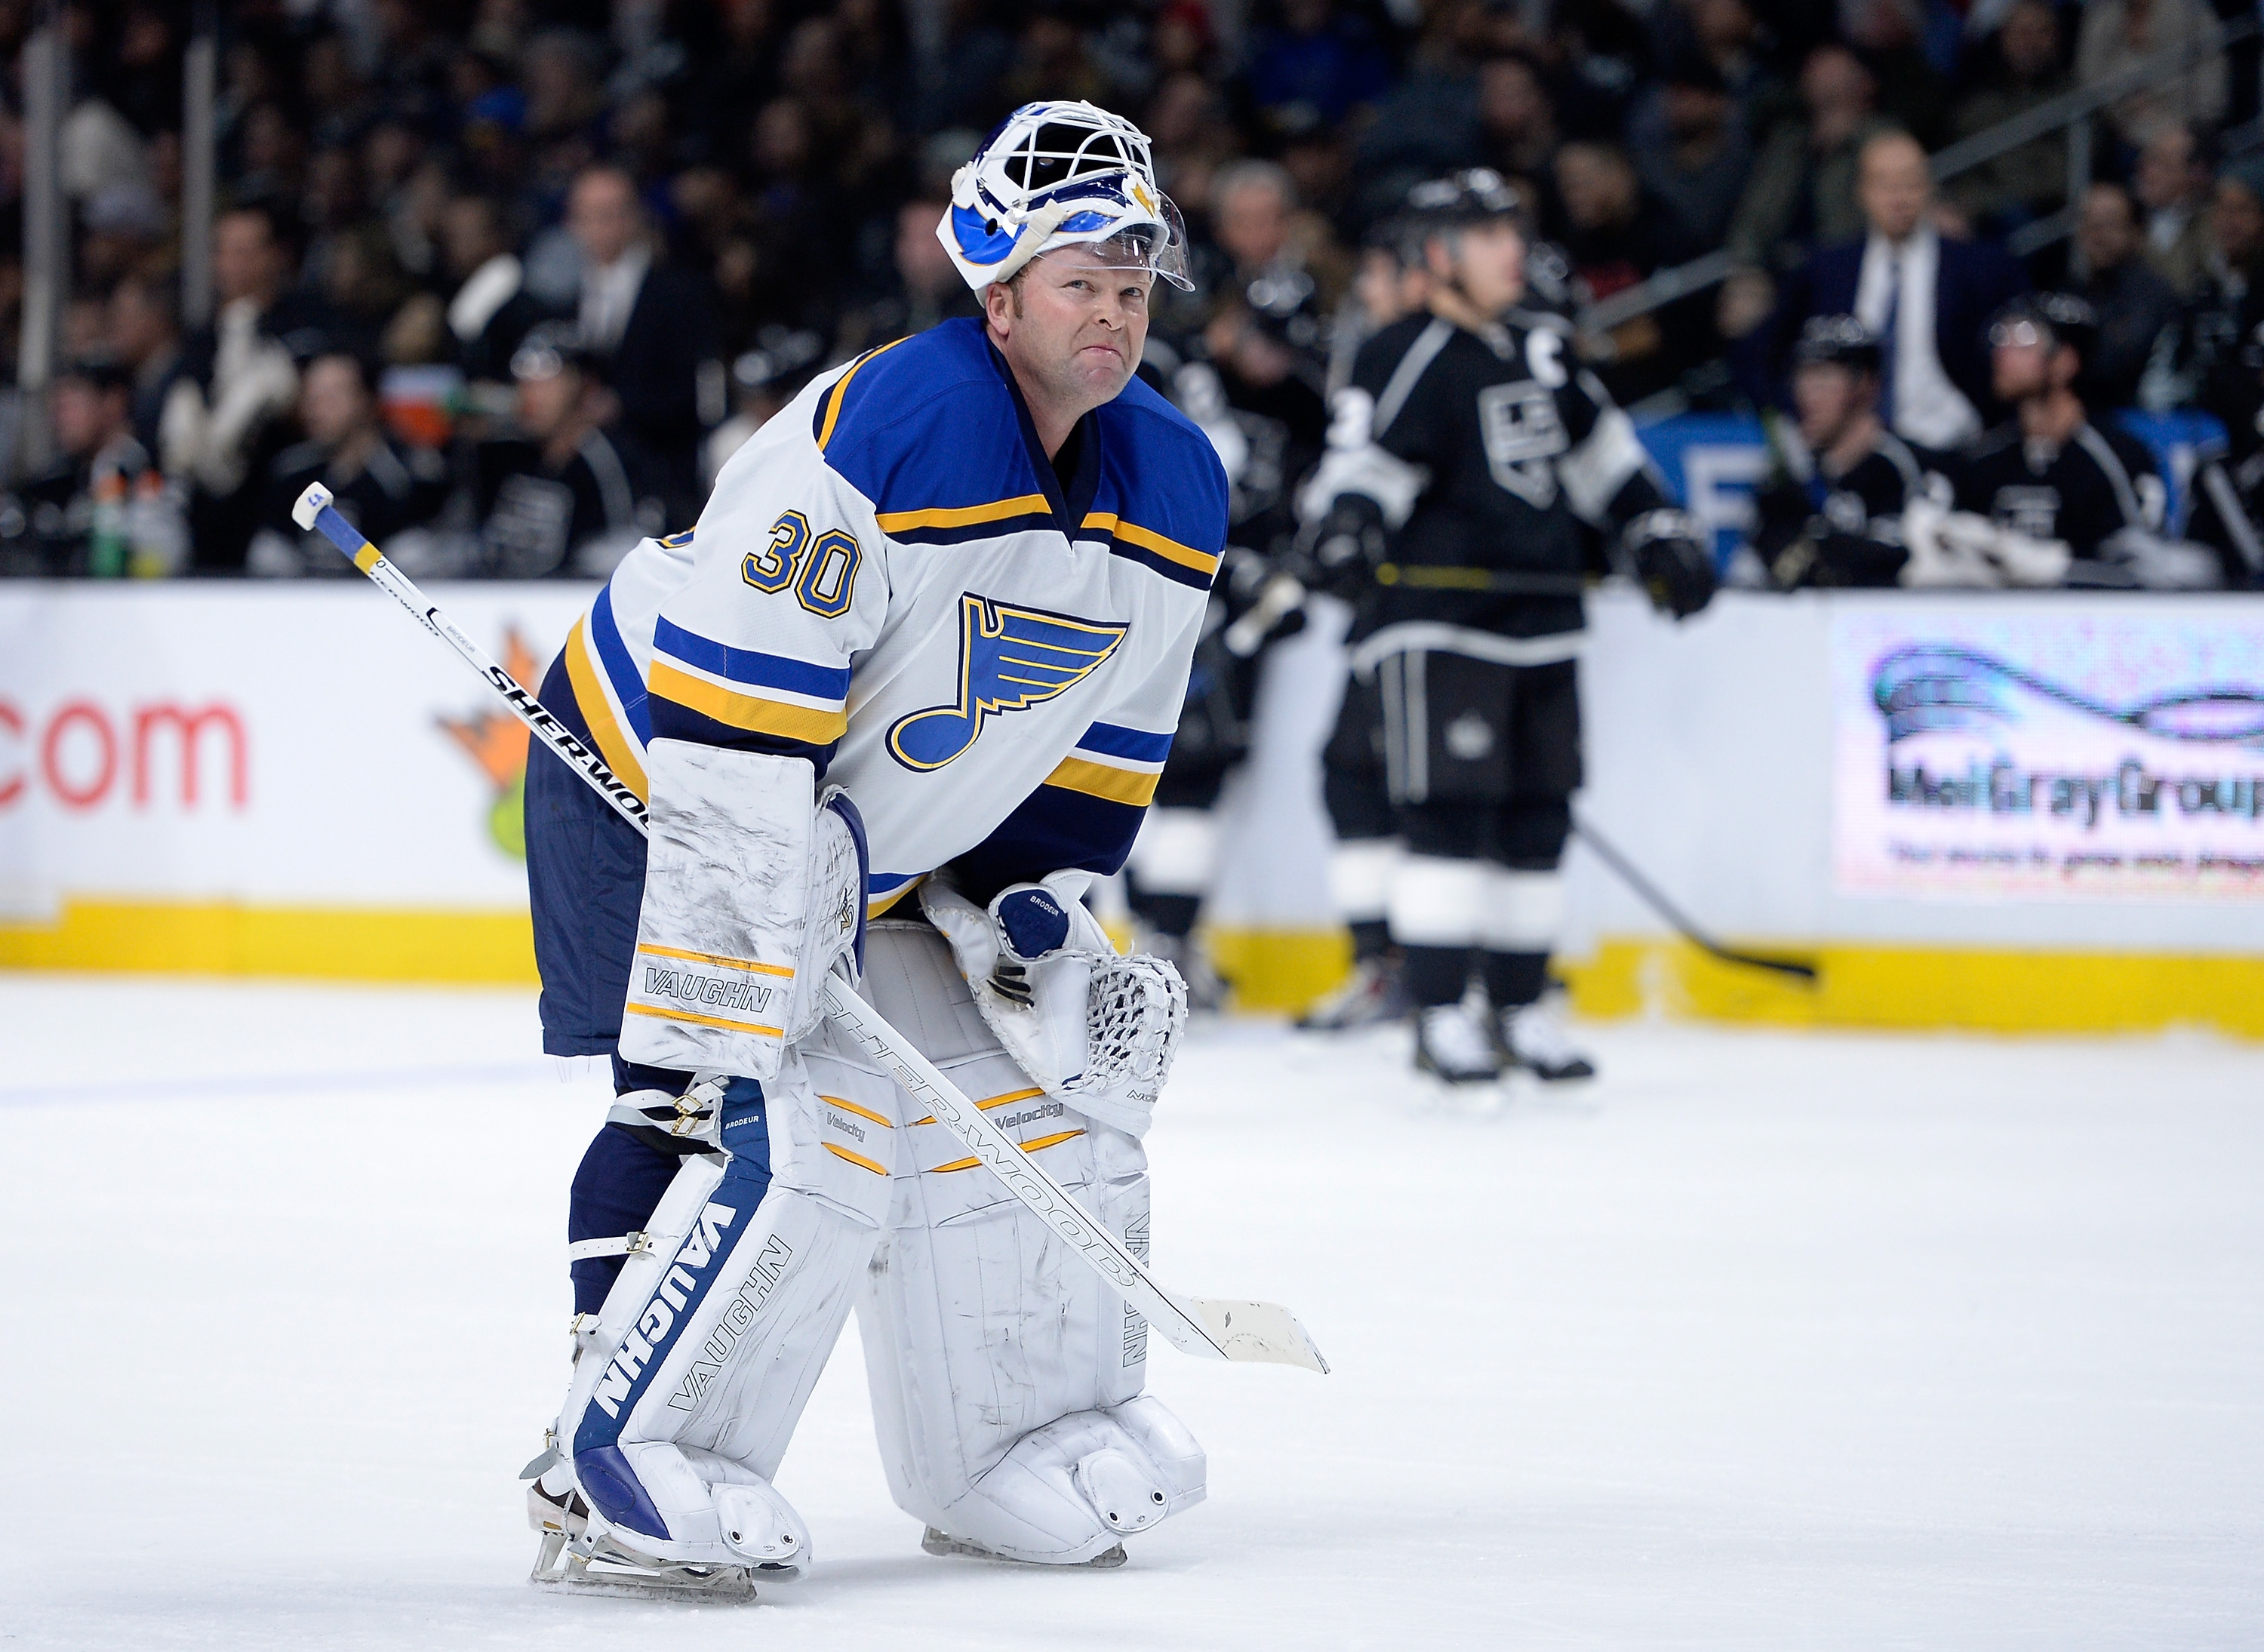 Martin Brodeur had a comedic nightmare in Los Angeles (Video)